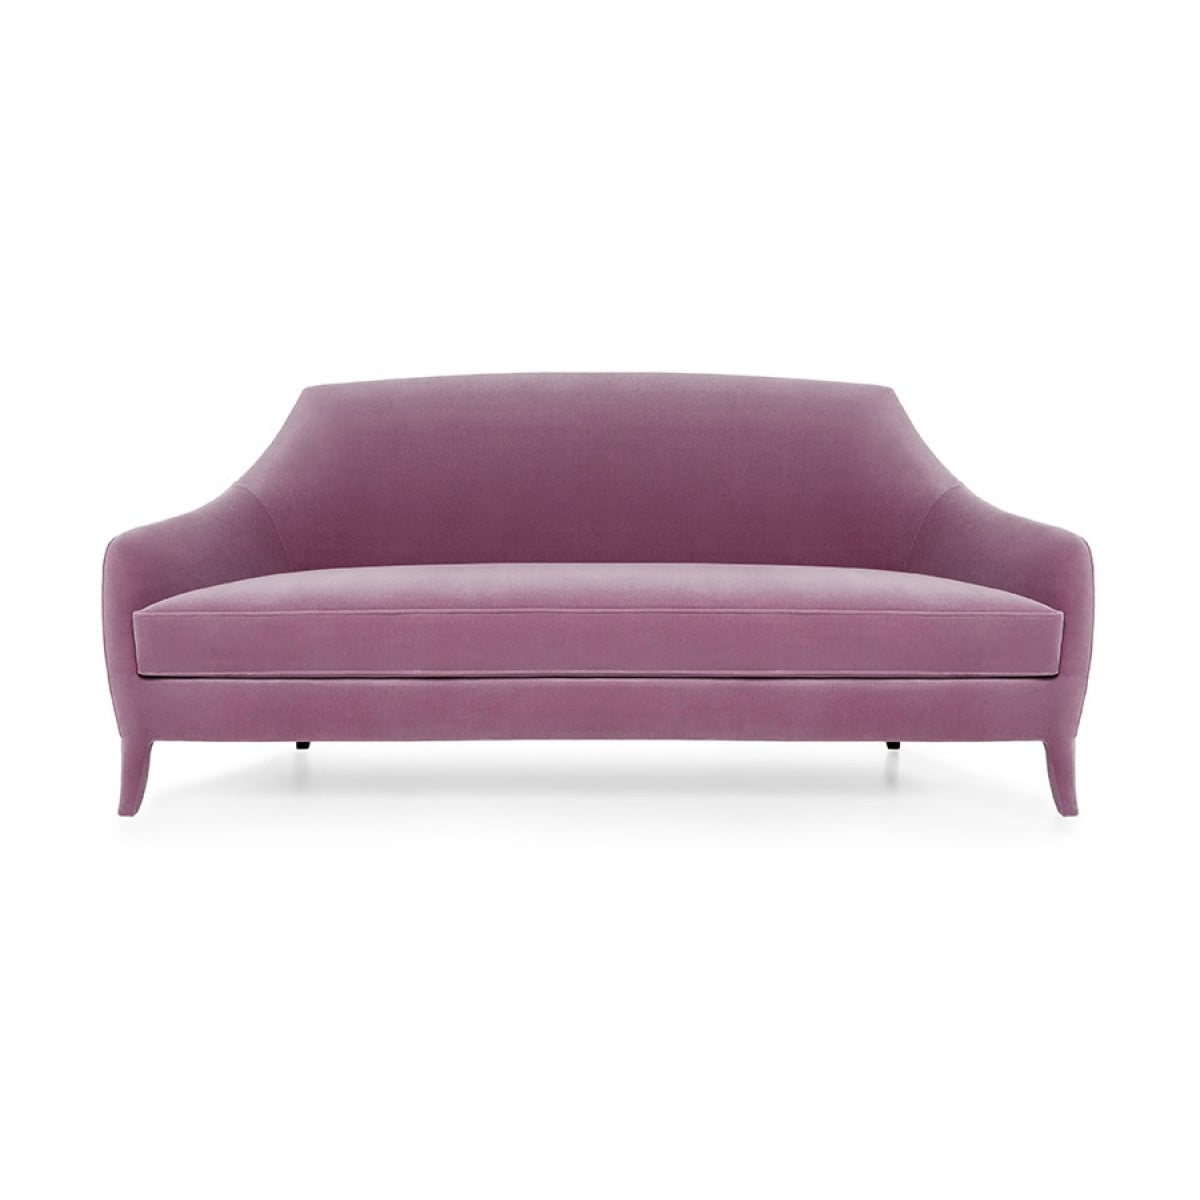 designer sofa purple sofa margaret swanky interiors. Black Bedroom Furniture Sets. Home Design Ideas